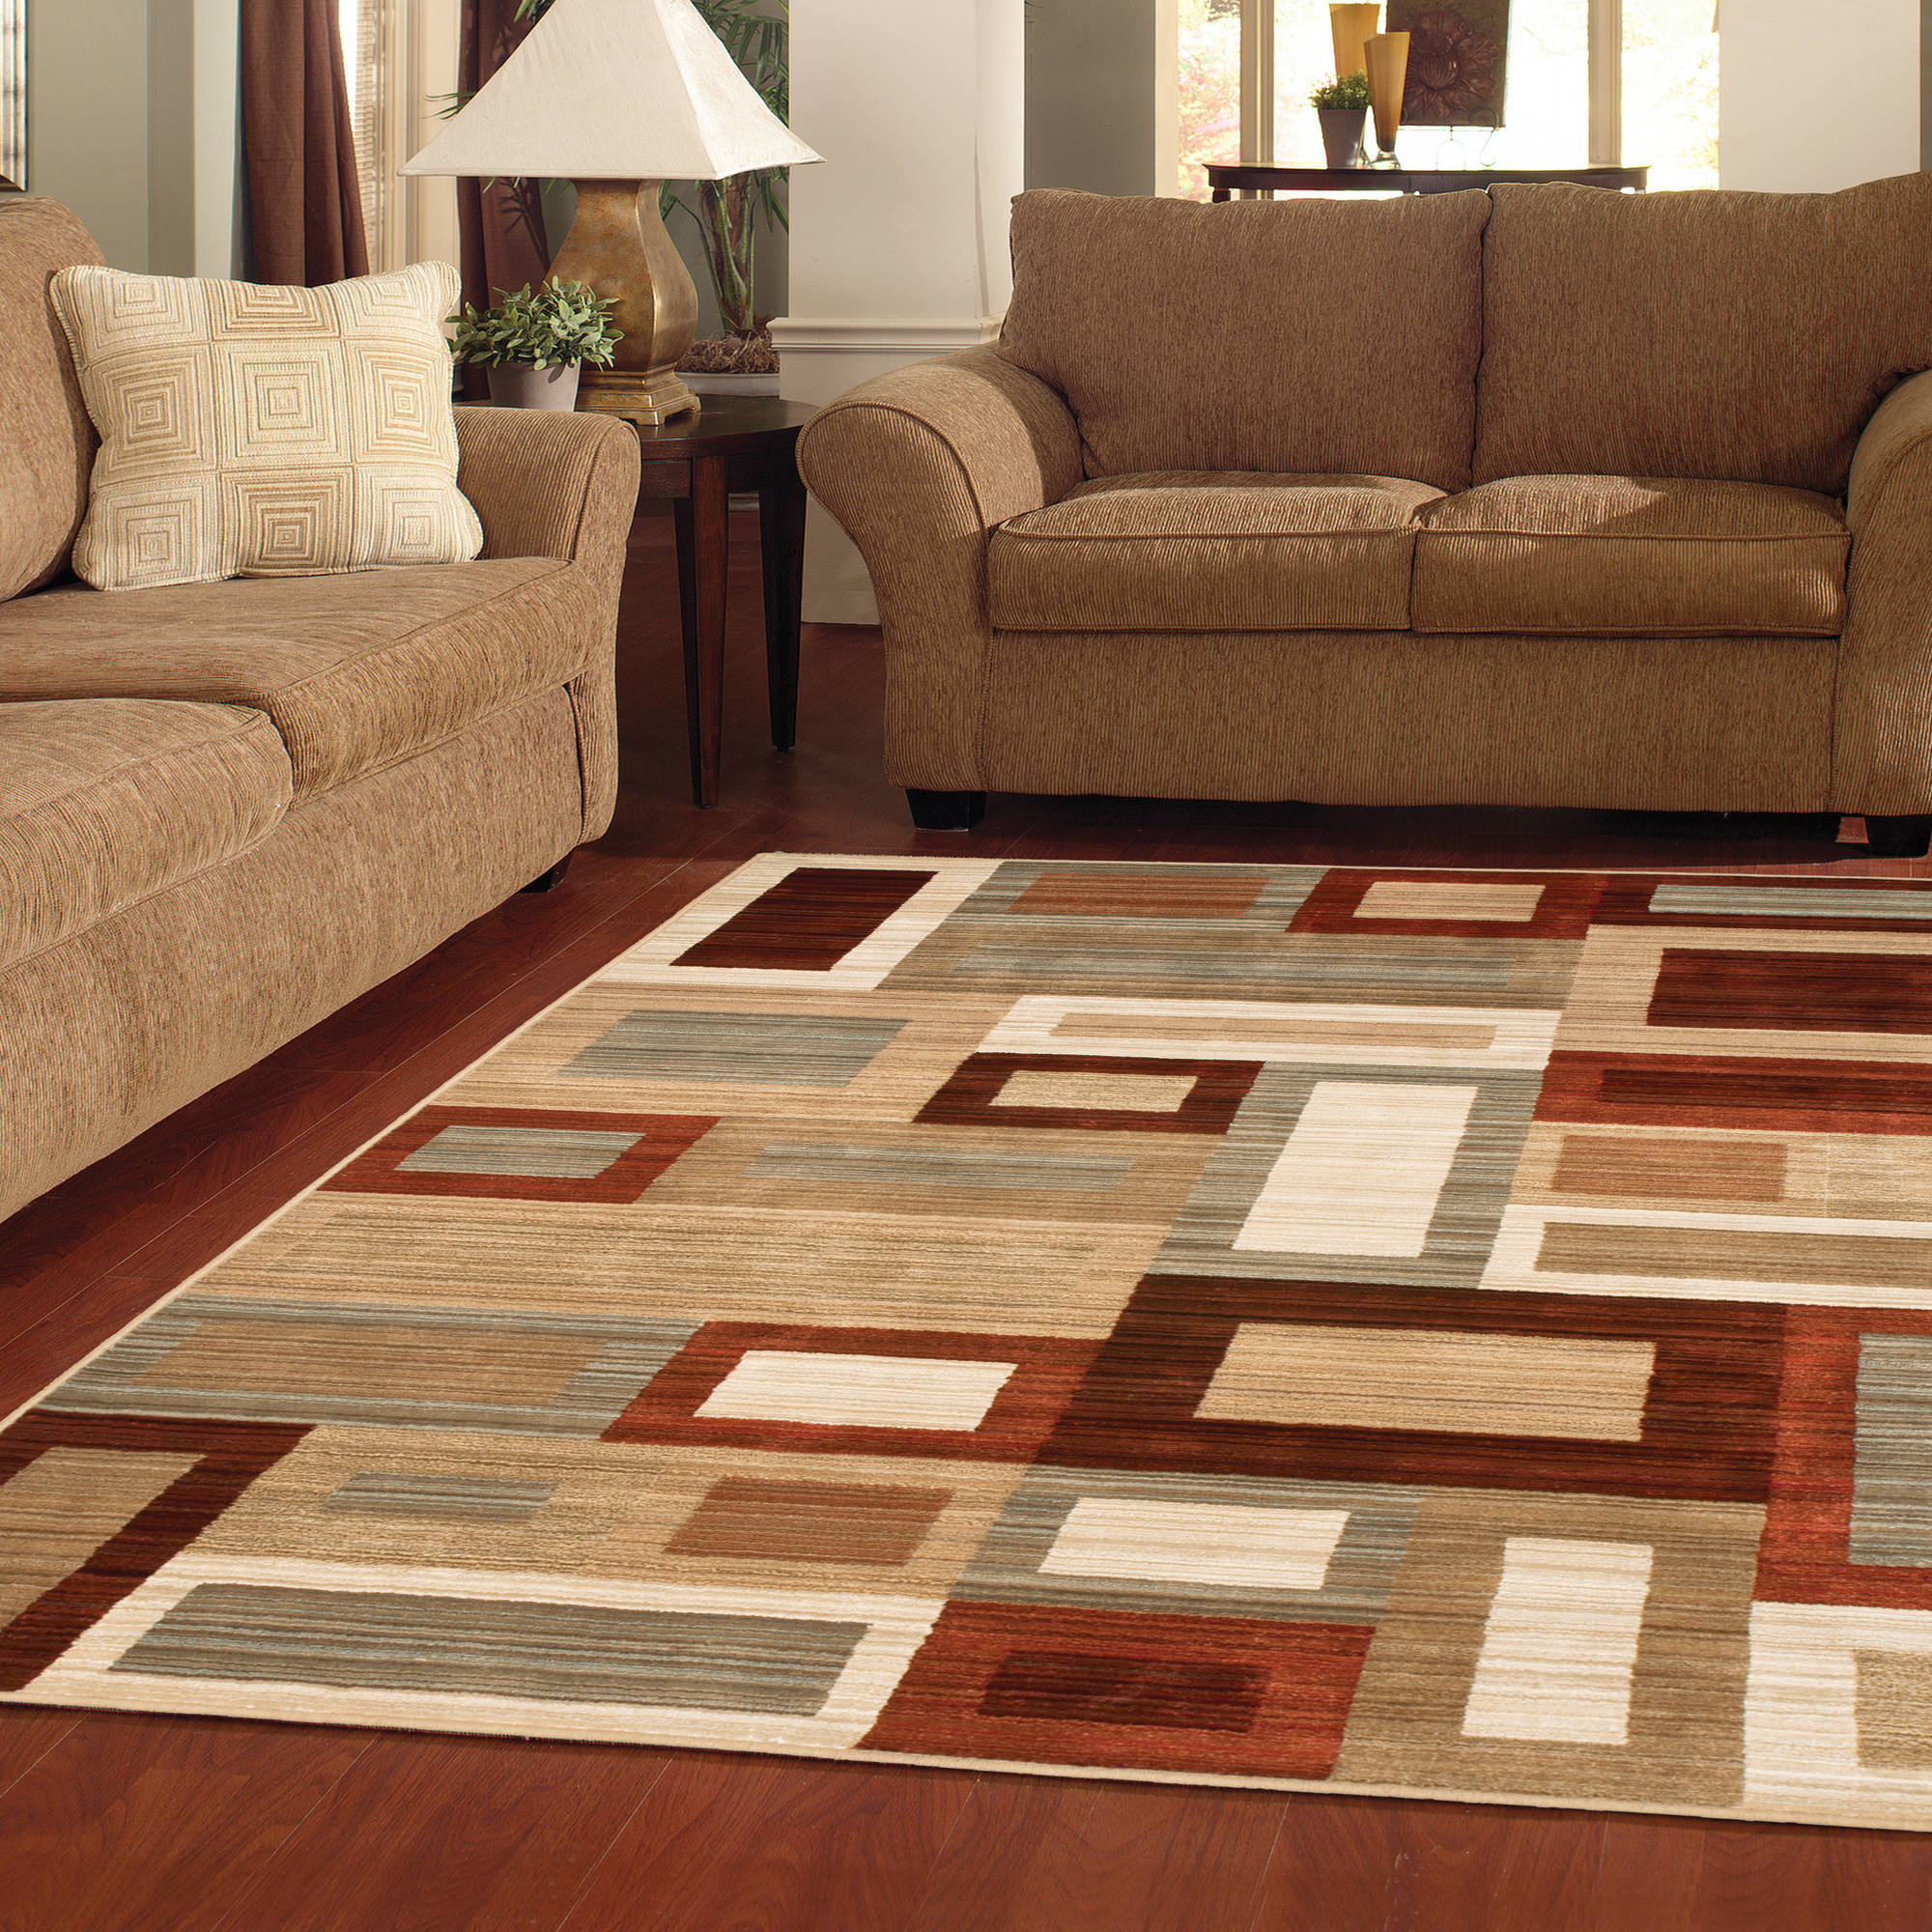 Better Homes and Gardens Rugs Walmartcom